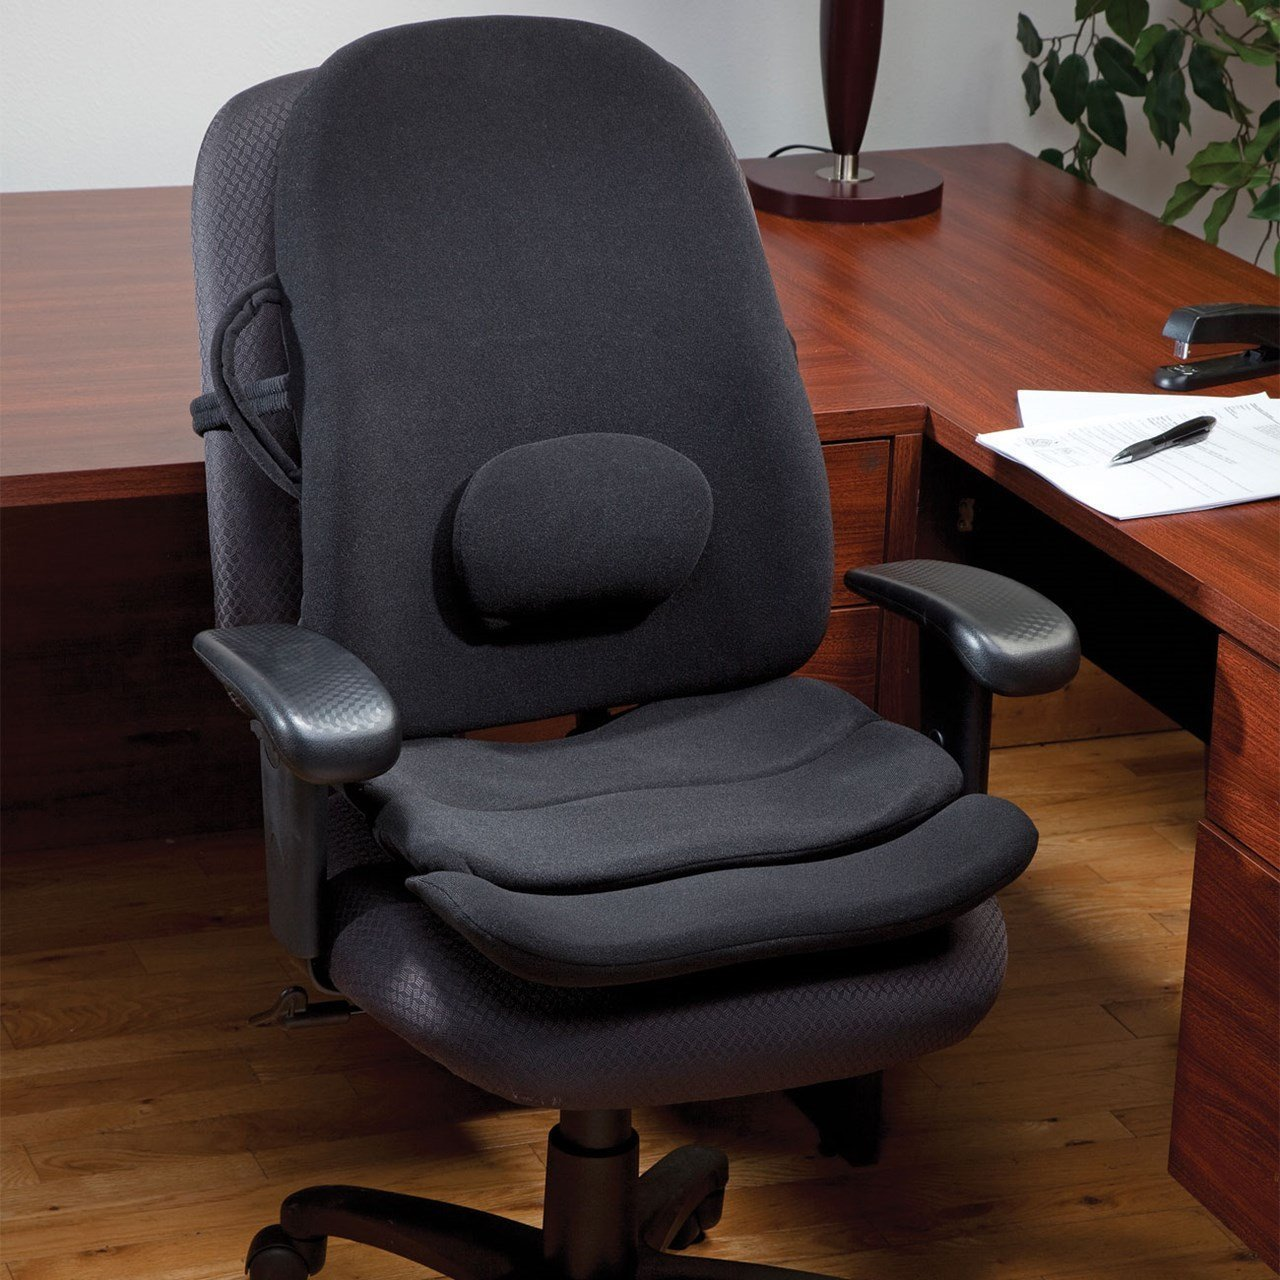 Seat Cushions For Back Problems  Home Furniture Design